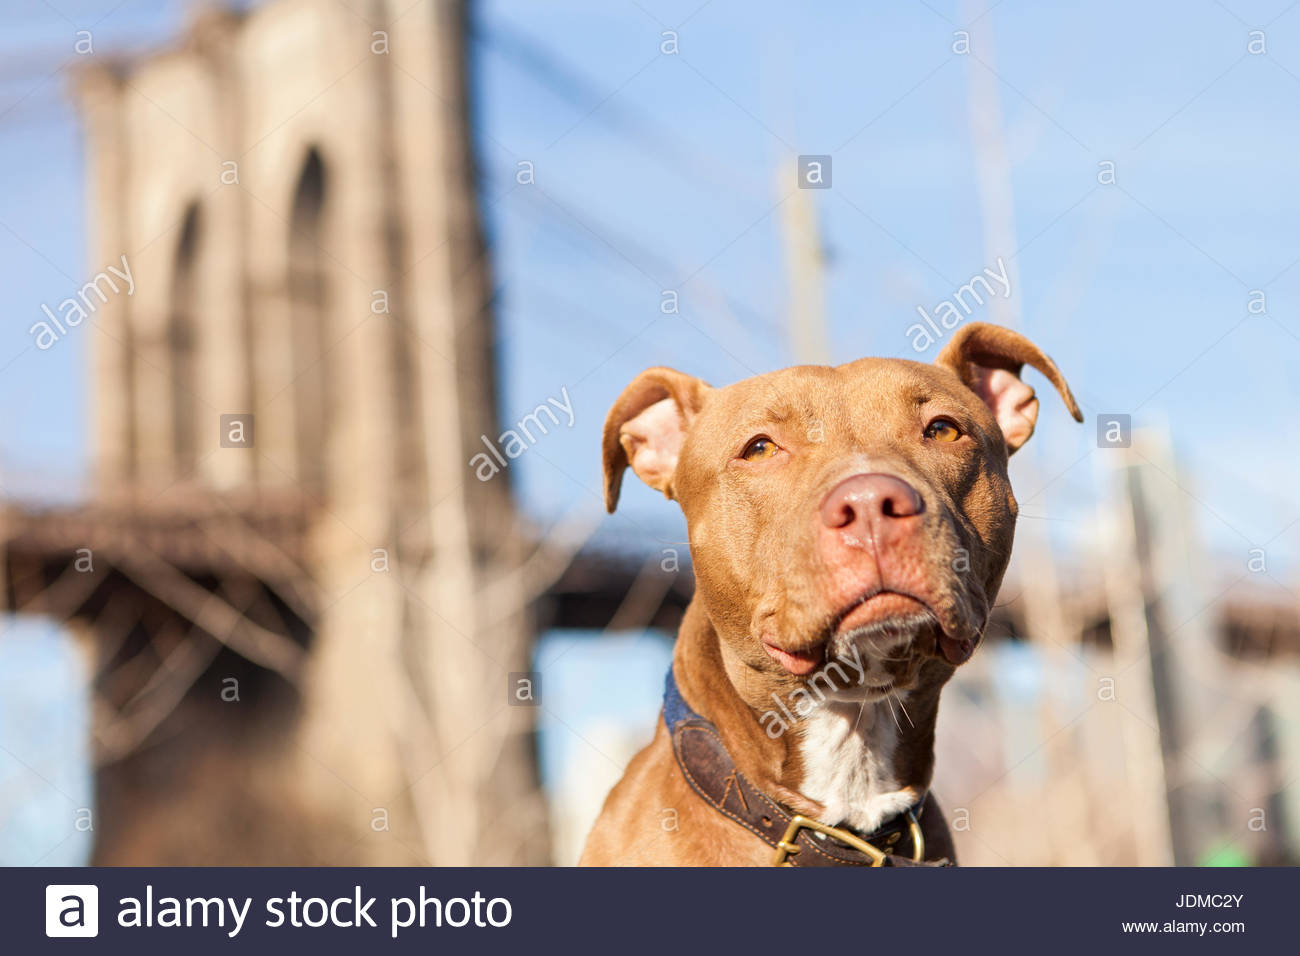 An American Staffordshire Terrier, or pit bull, poses for pictures on a warm sunny morning. - Stock Image